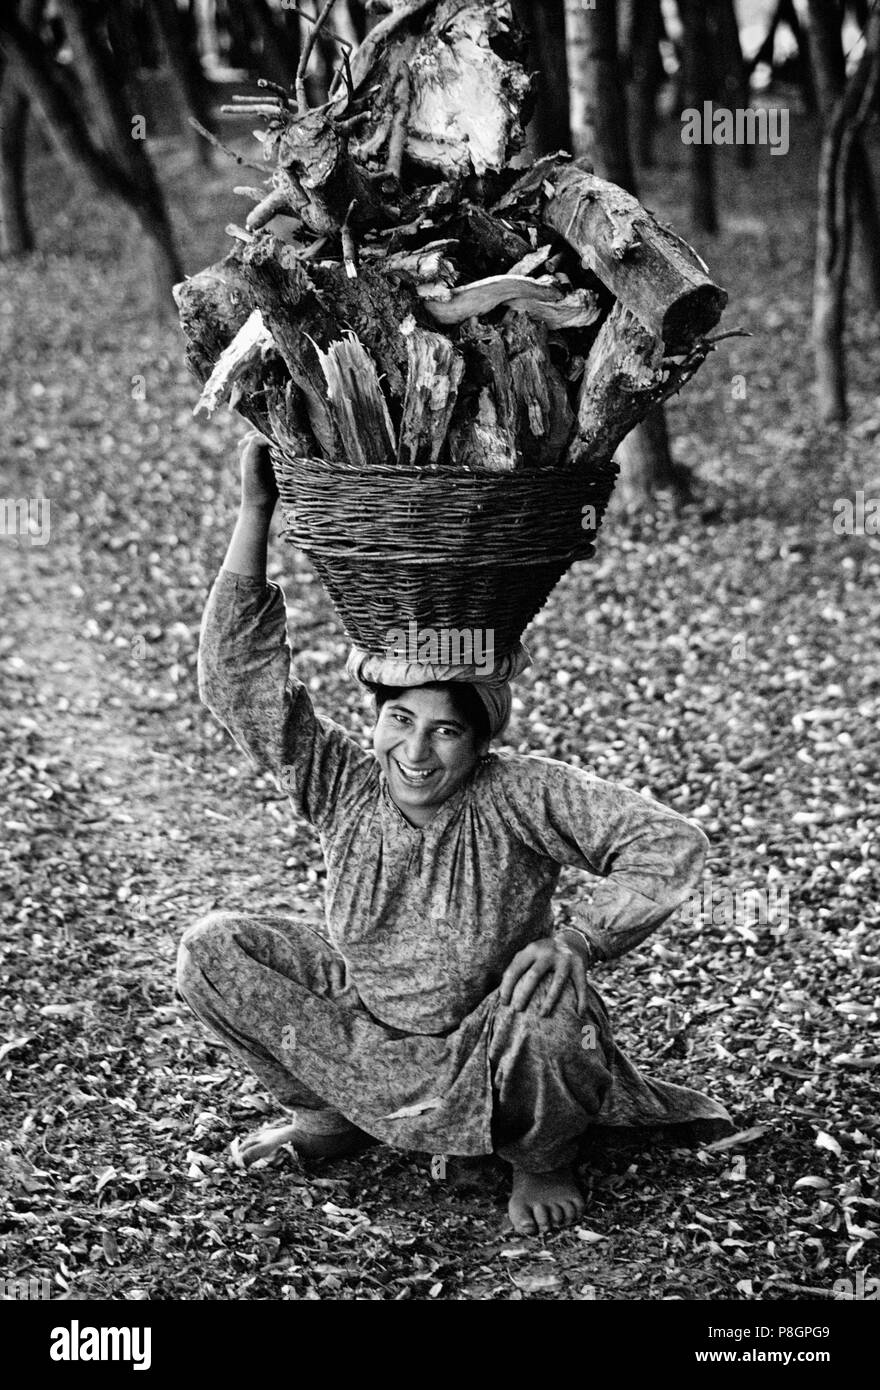 KASHMIRI WOMAN carries a BASKET of FIRE WOOD on her head - KASHMIR, INDIA - Stock Image